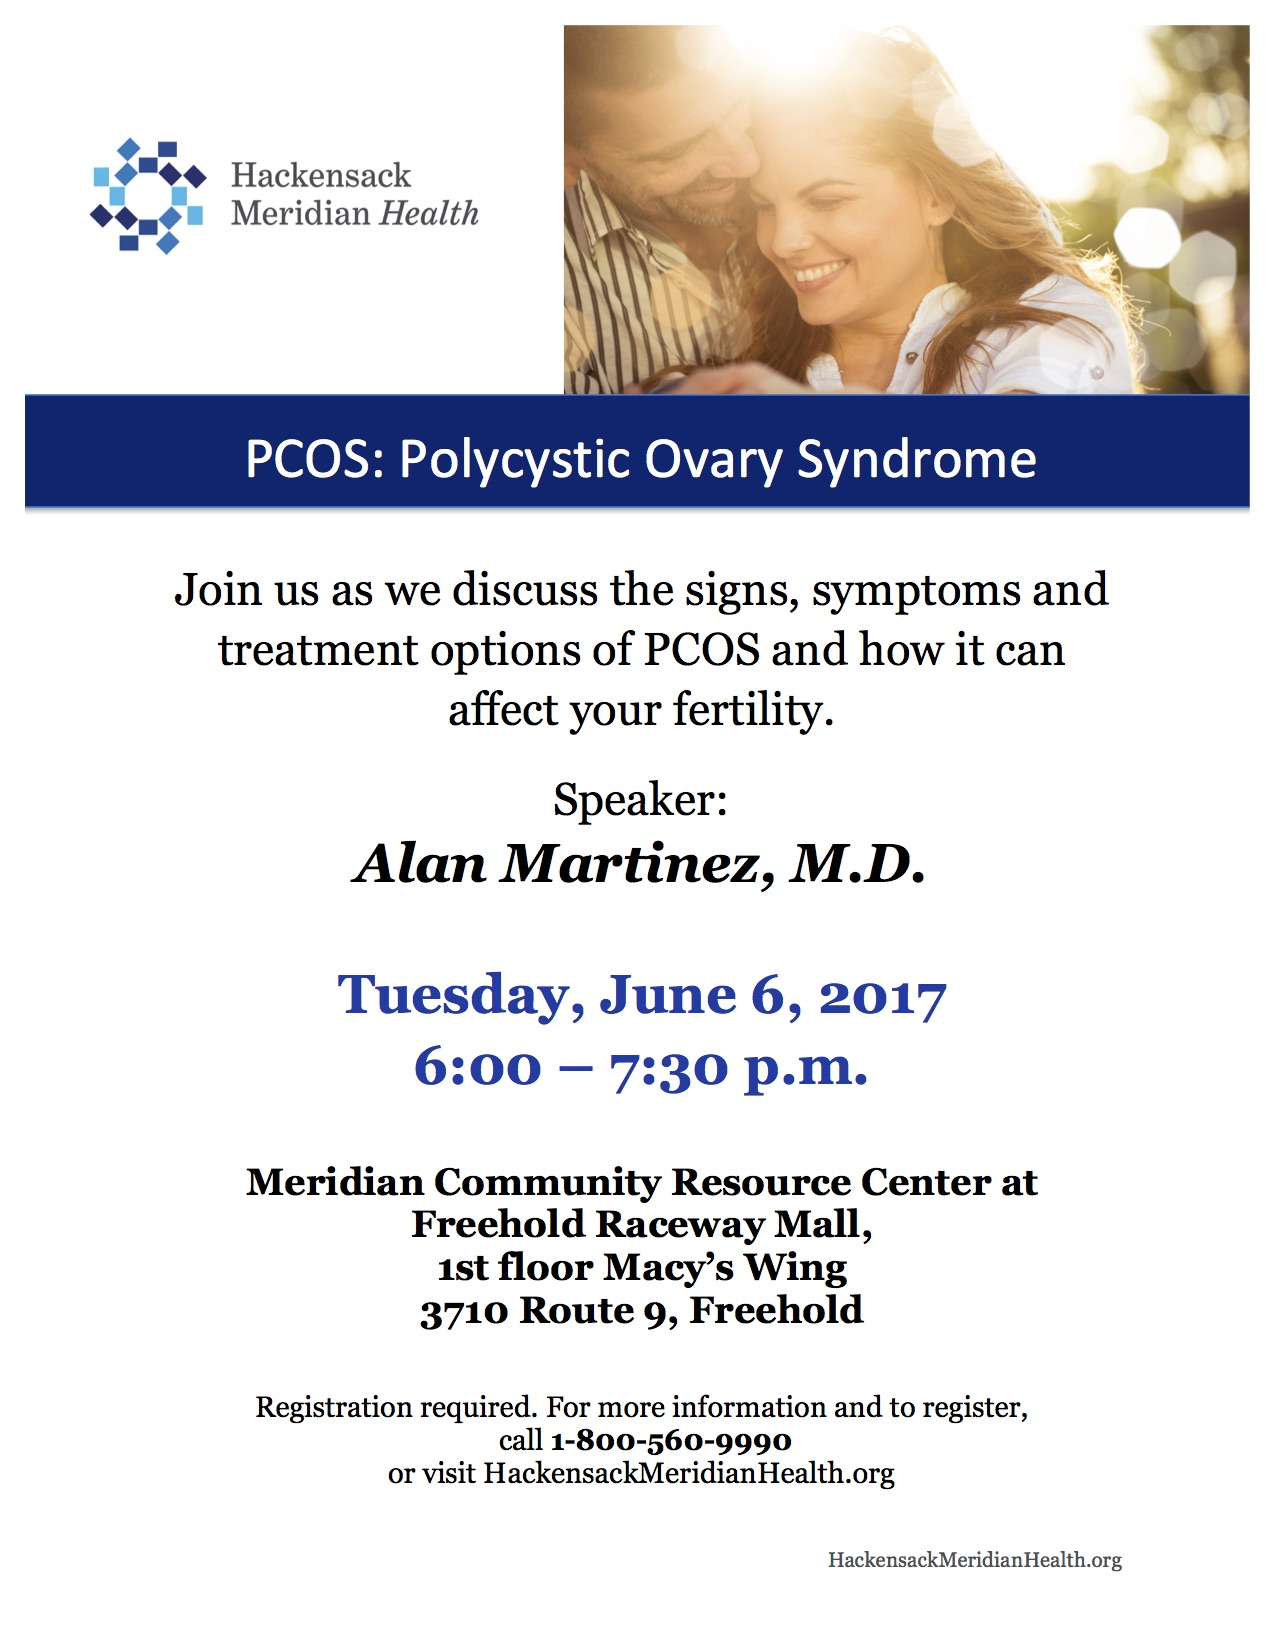 PCOS Informational Event   June 6, 2017   RSC New Jersey